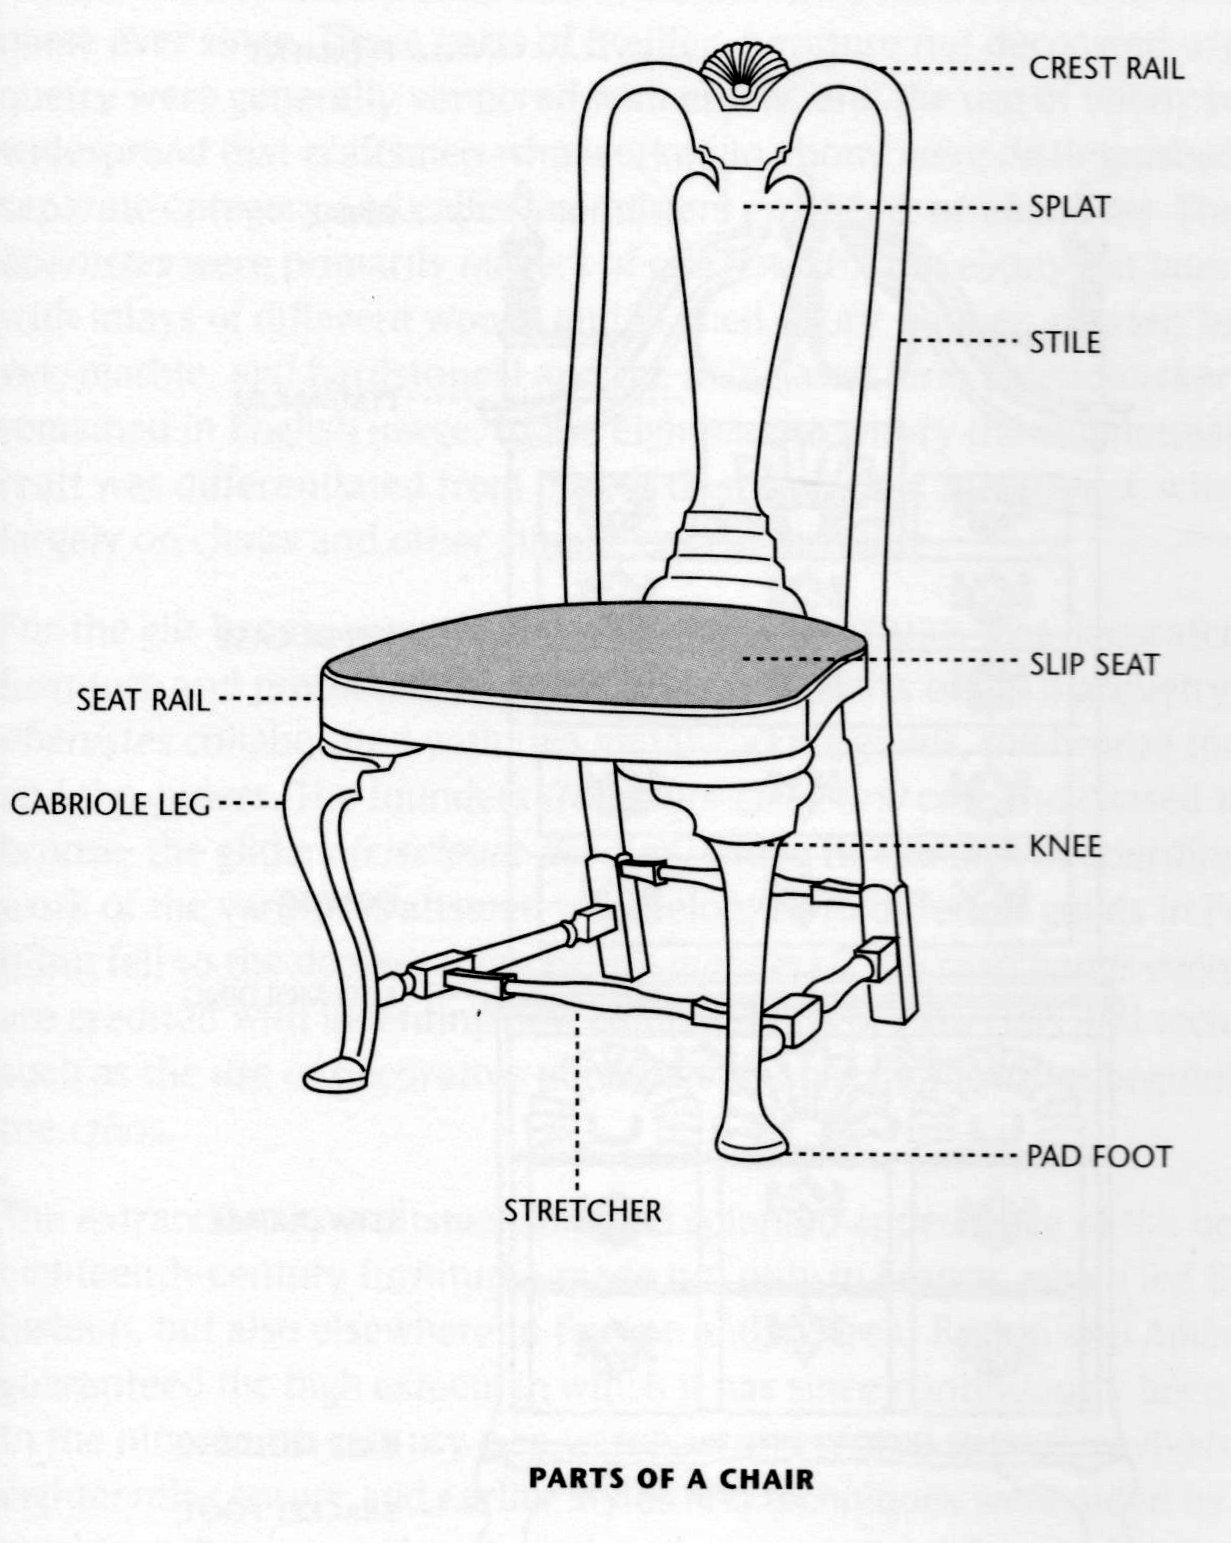 Design Dictionary Splat Stile or Cabriole Porch Advice : Parts of a Chair Porch chairs from porch.com size 1231 x 1543 jpeg 213kB